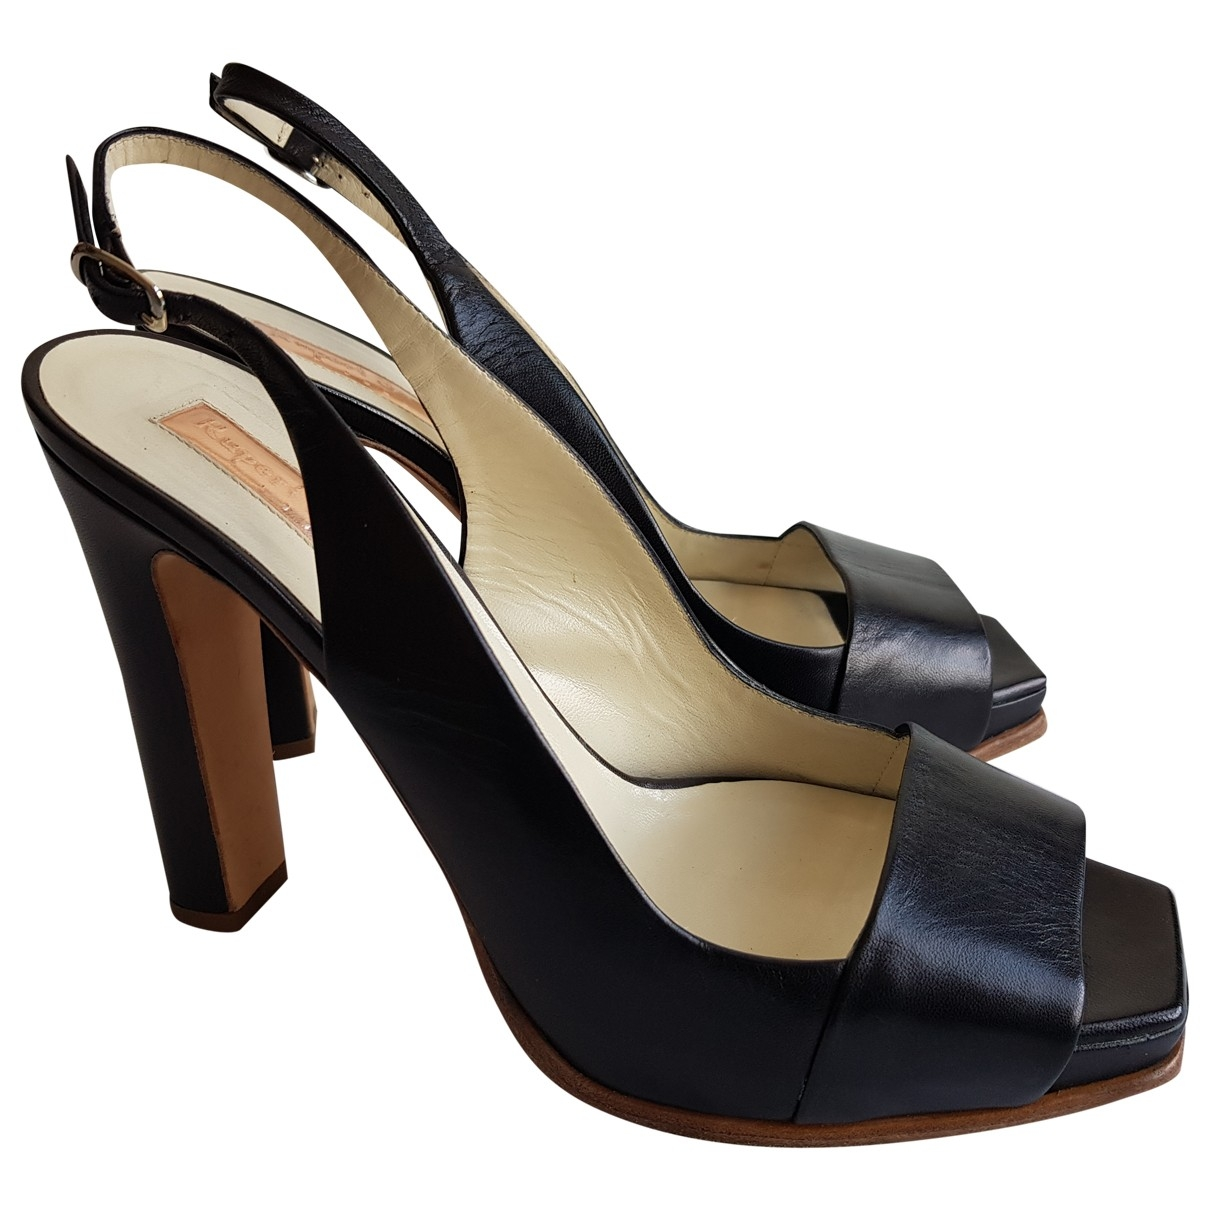 Rupert Sanderson \N Black Leather Sandals for Women 39 EU